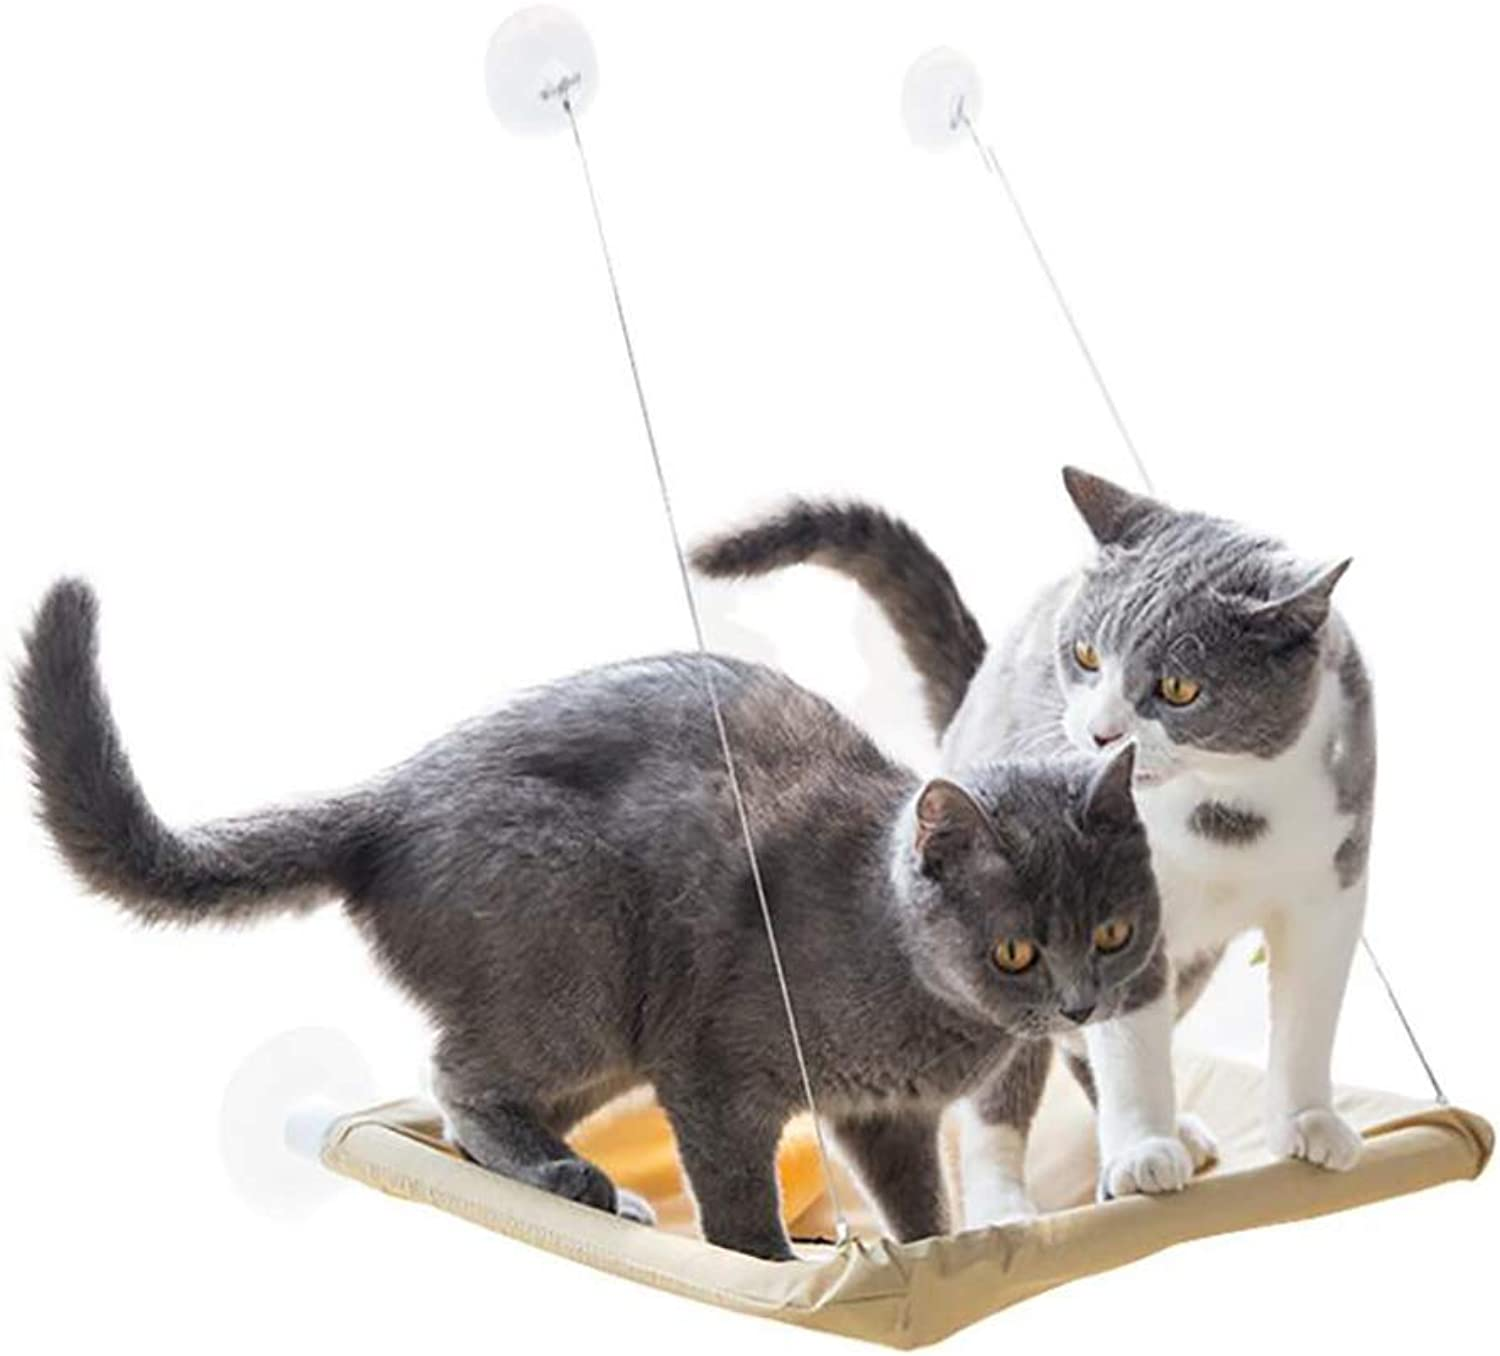 Cat Hammock,Detachable Cat Hanging Bed Summer Hanging Cat Pet Supplies,Comfortable and Breathable